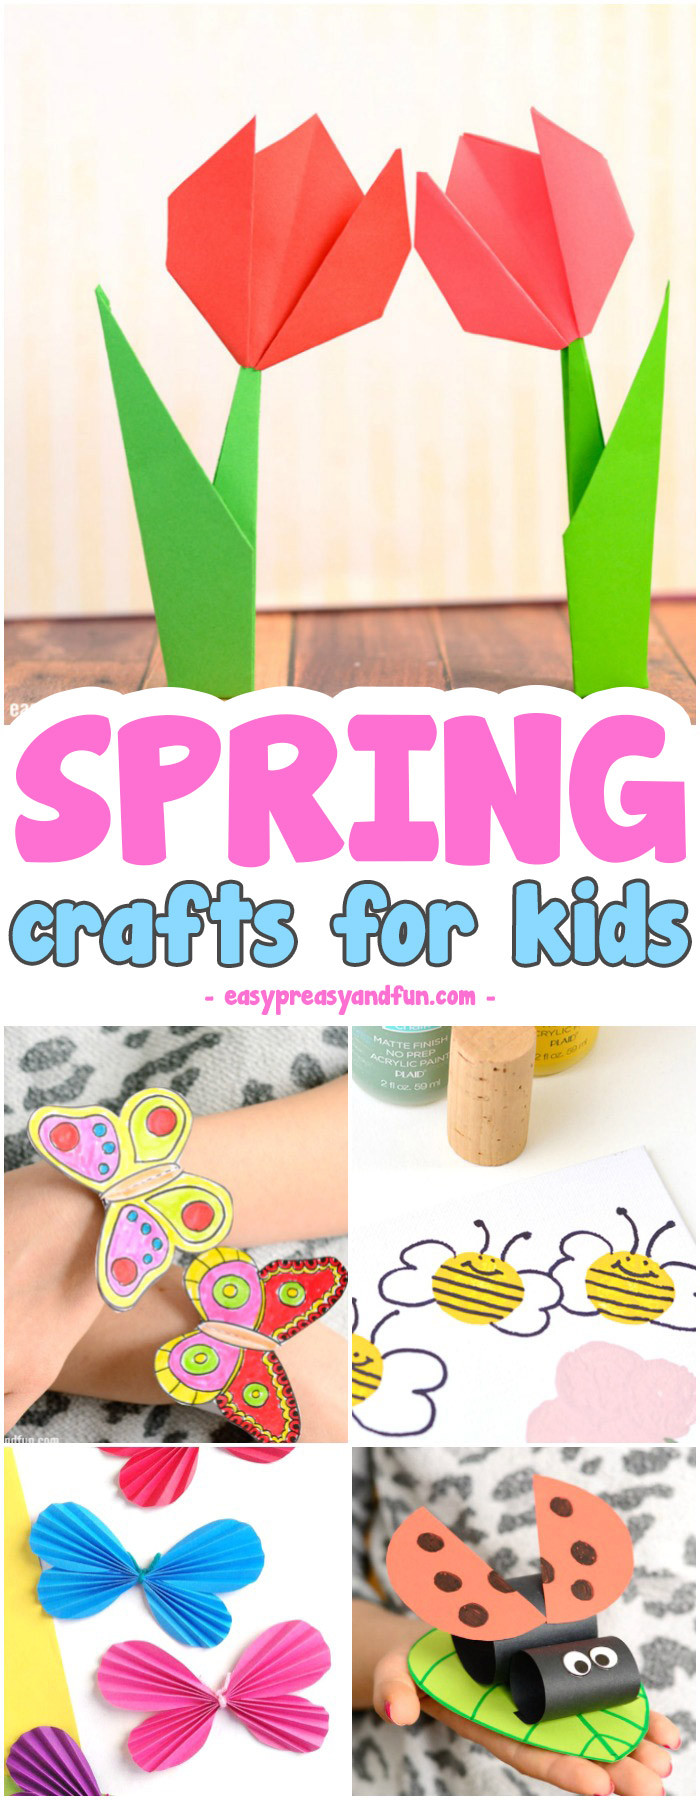 Best ideas about Best Kids Craft . Save or Pin Spring Crafts for Kids Art and Craft Project Ideas for Now.